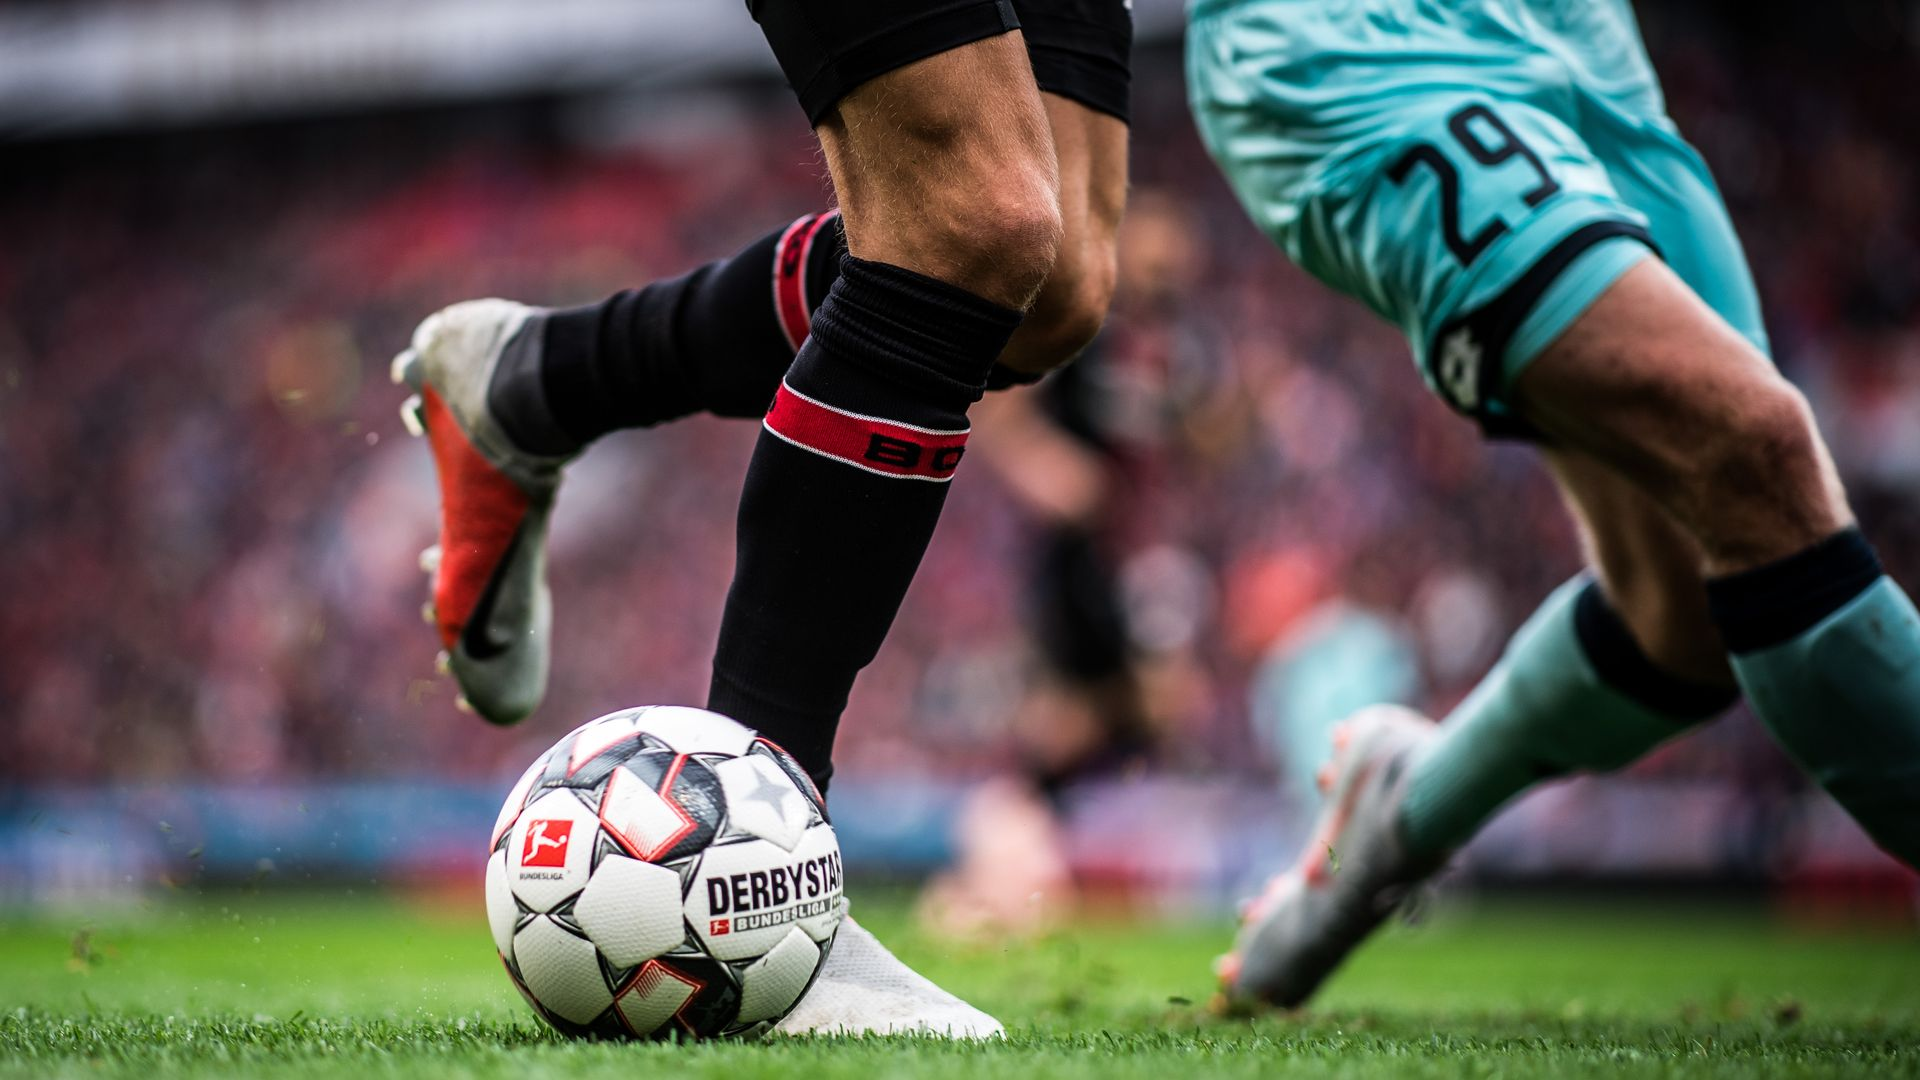 New partnership: using AI to deliver localised highlights | DFL Deutsche Fußball Liga